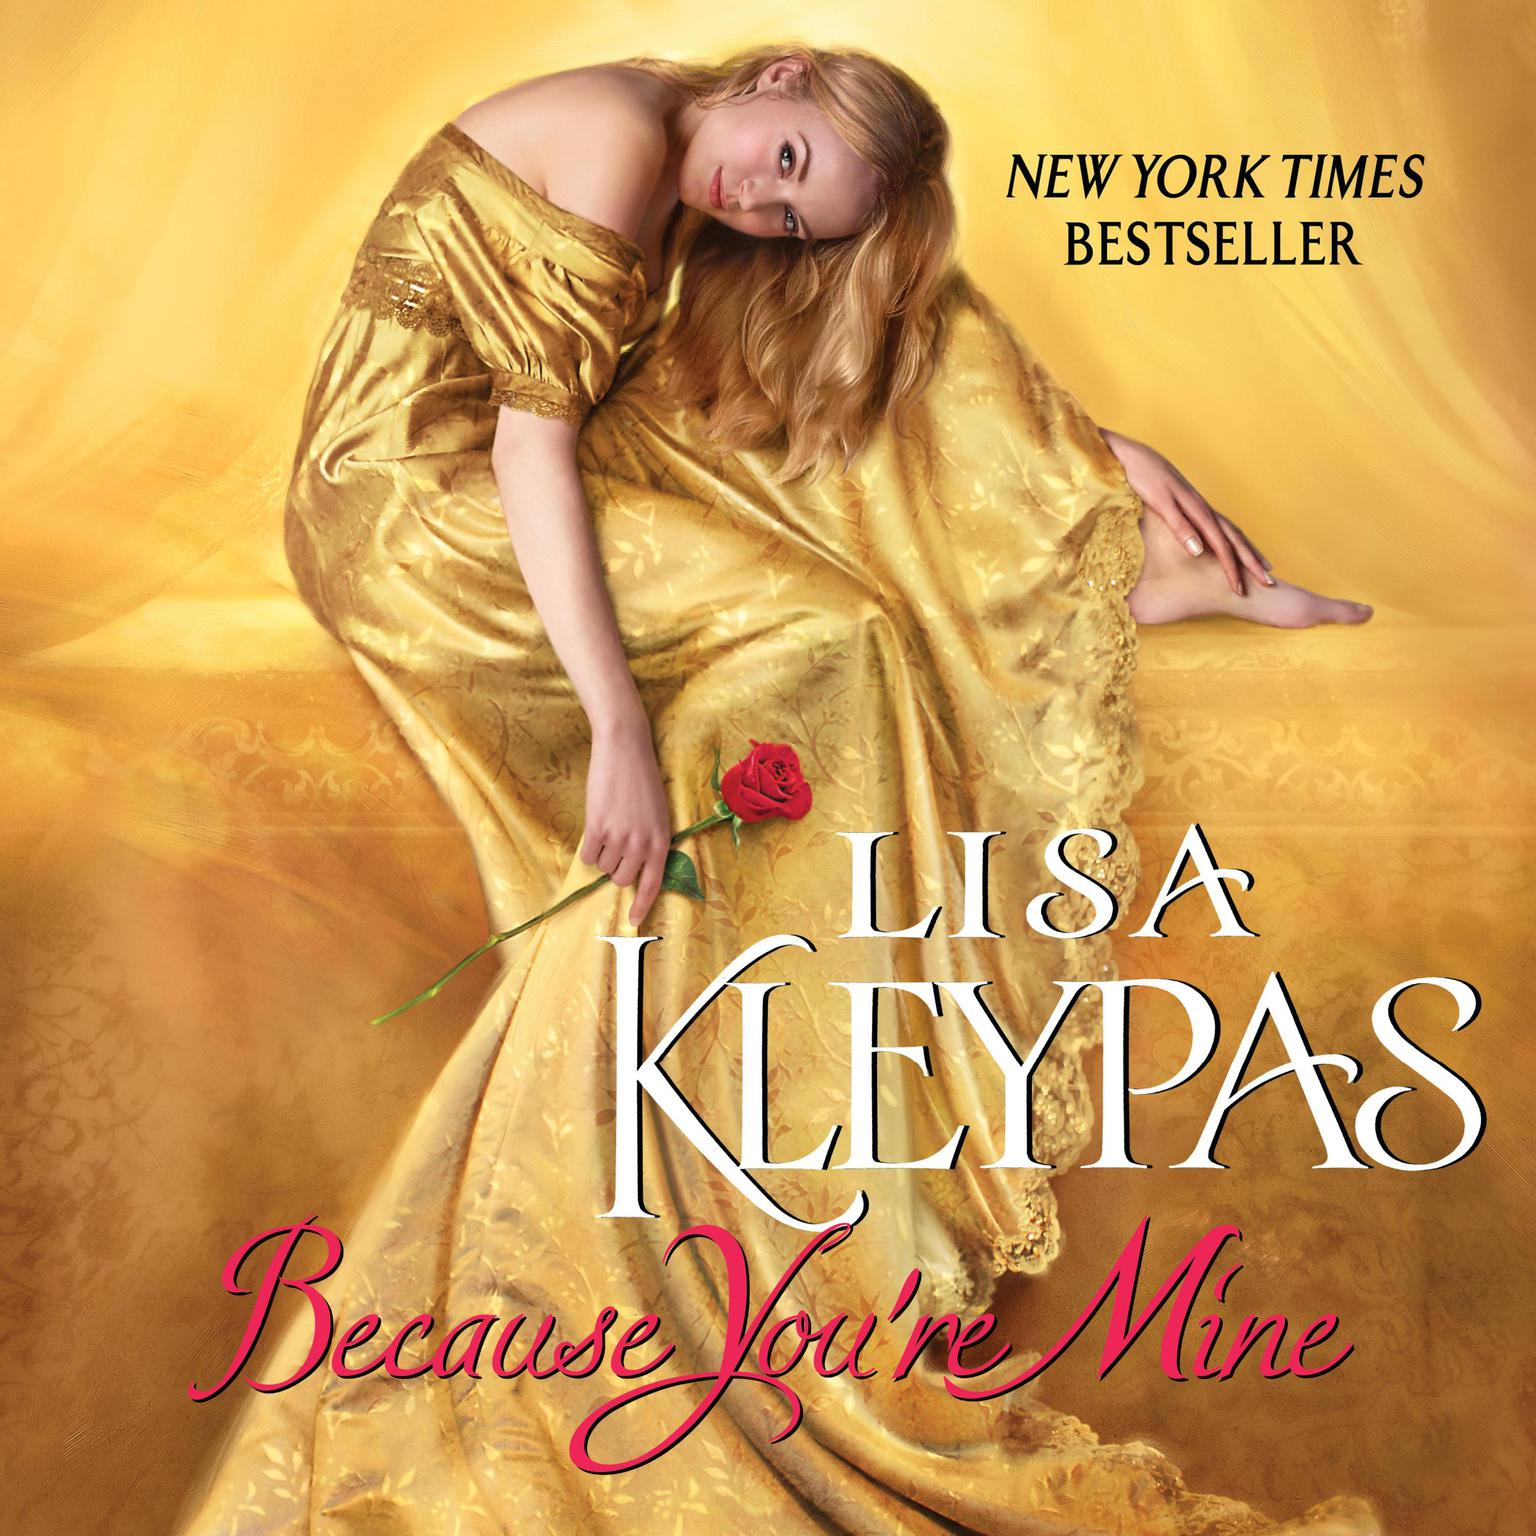 Because Youre Mine: A Novel Audiobook, by Lisa Kleypas